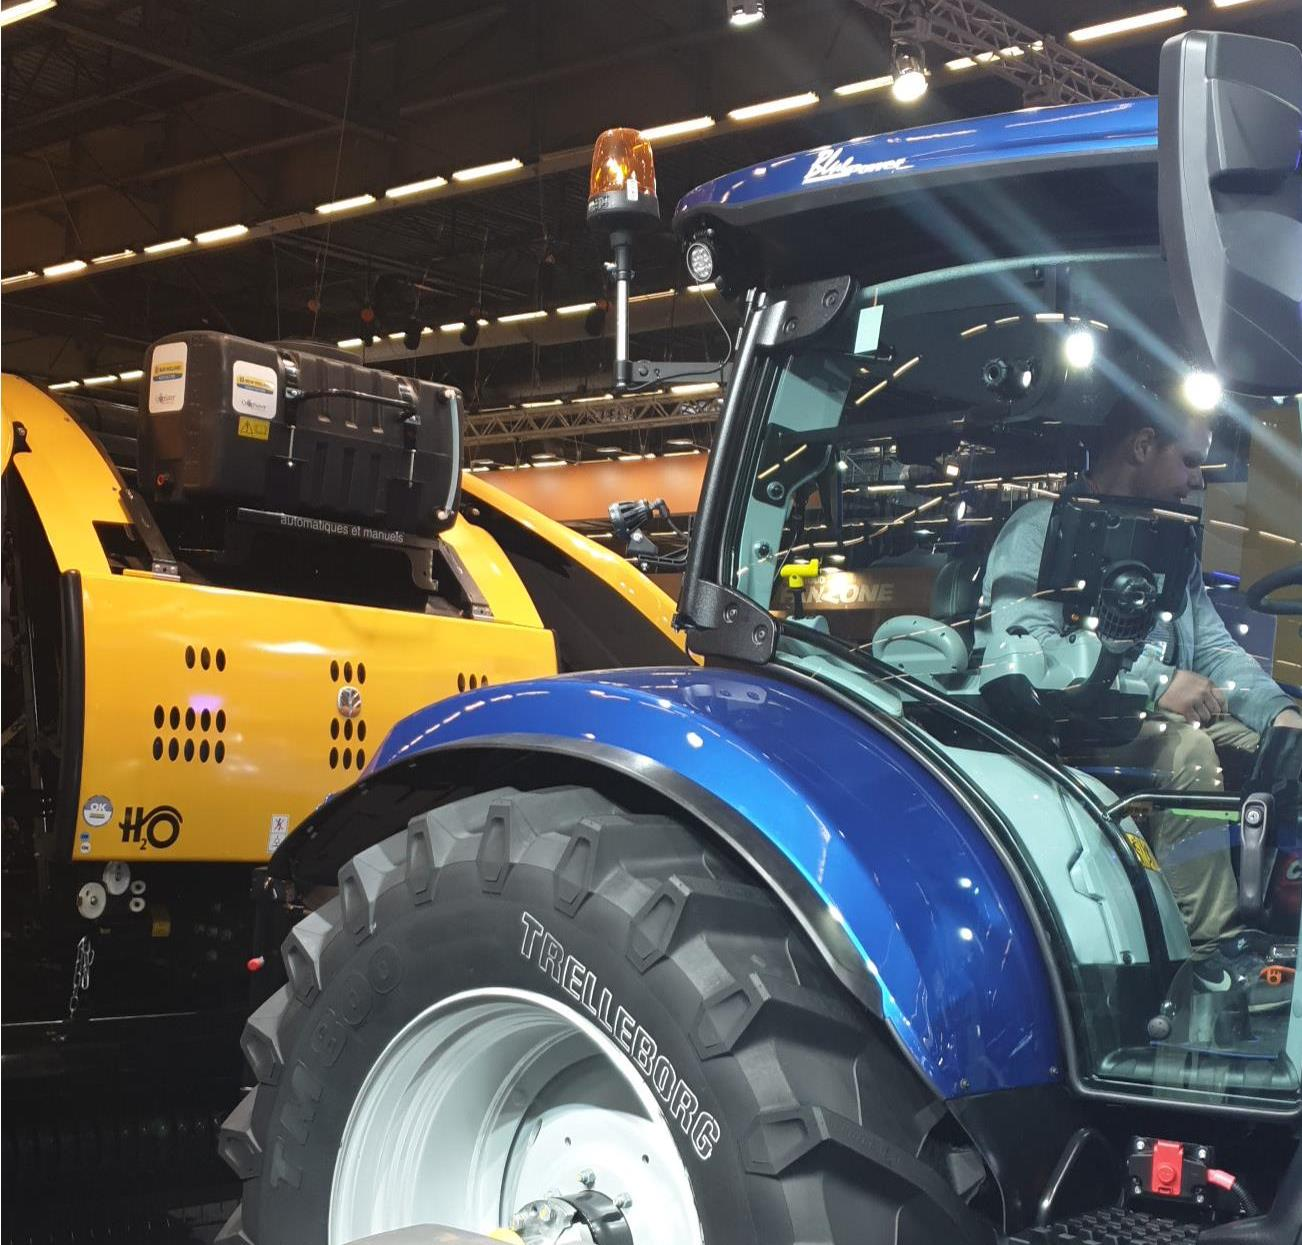 New Holland RB baler at SIMA Paris Show 2019